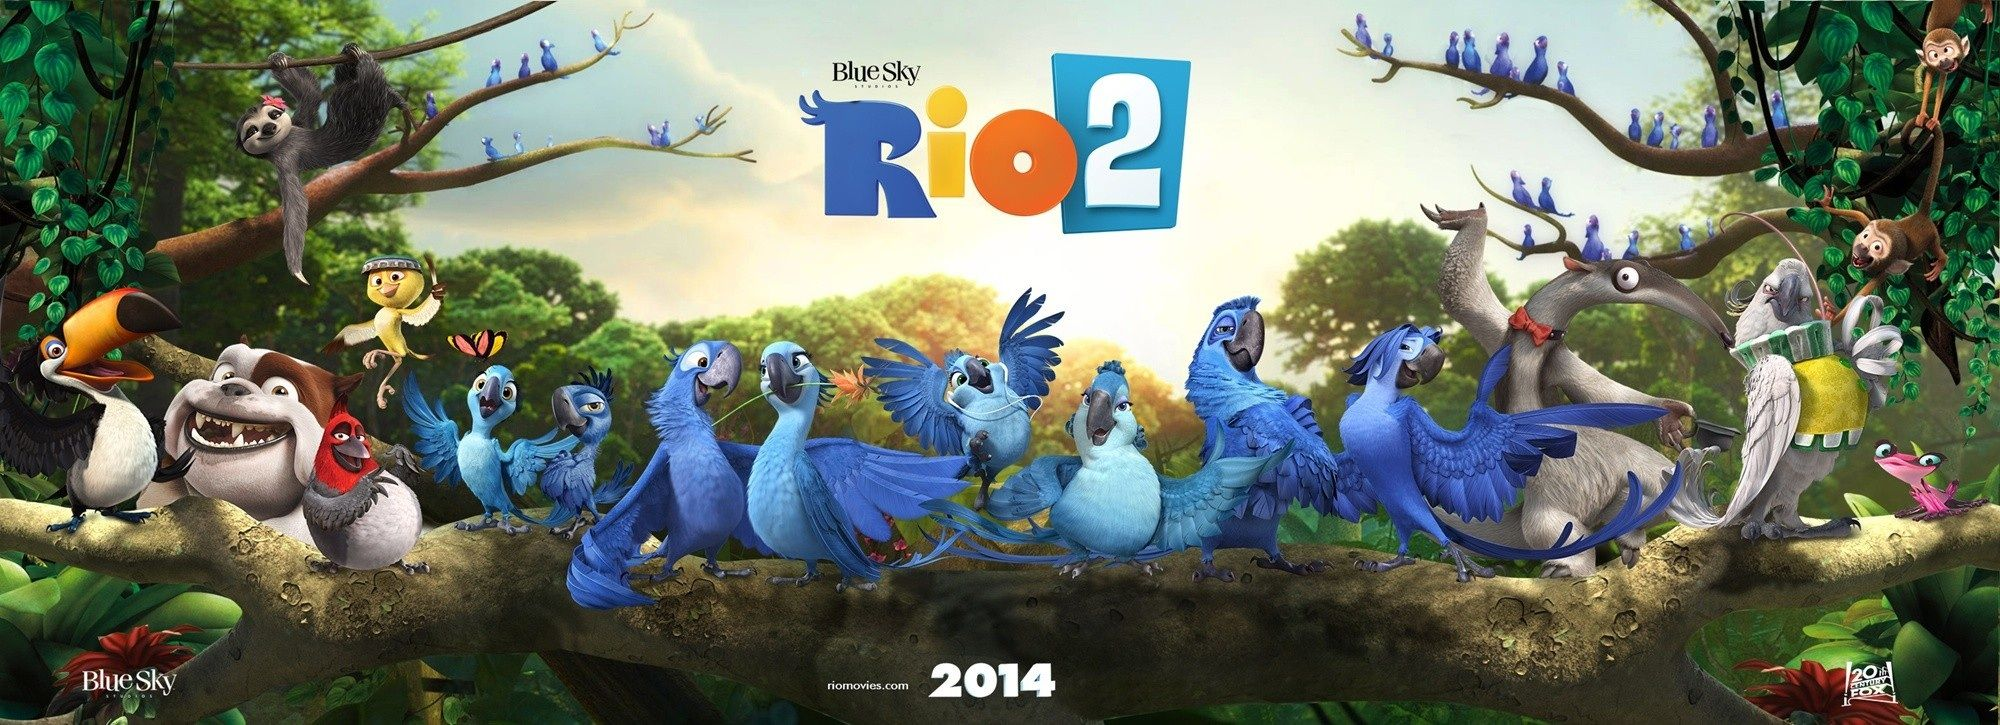 click here to download in hd format >> 2014 rio 2 movie http://www